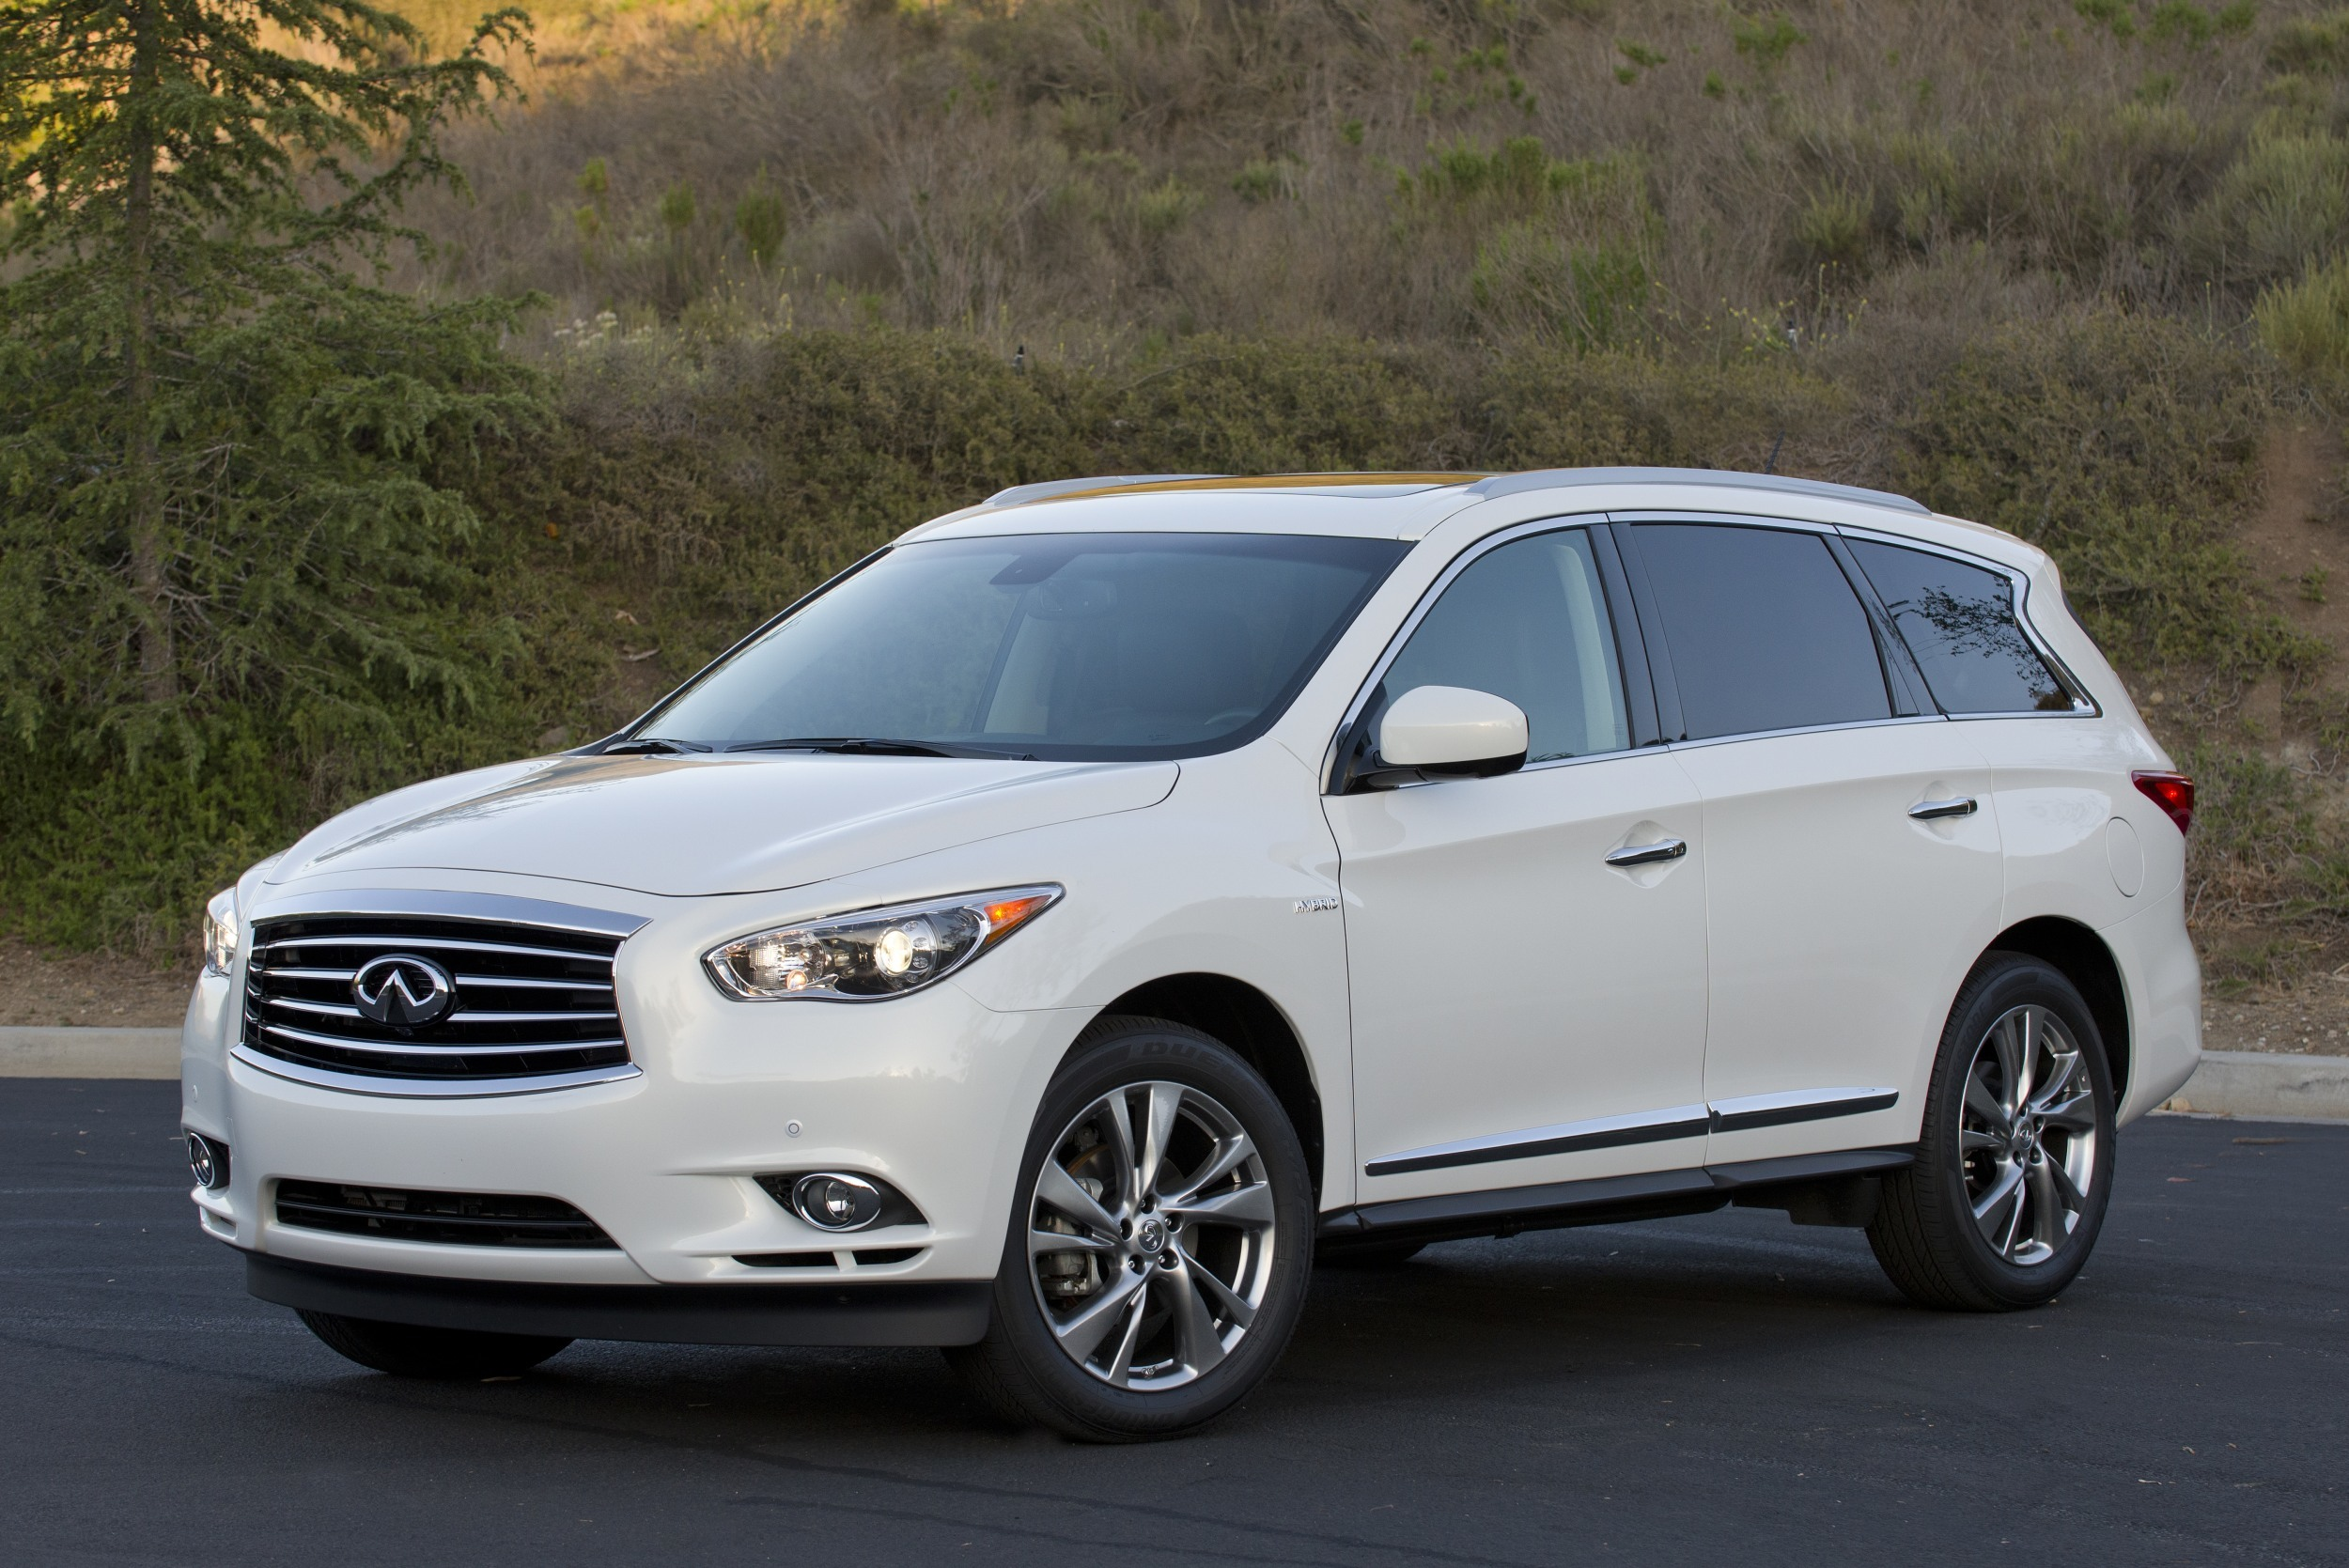 Infiniti Certified Pre Owned >> 2014 Infiniti QX60 Hybrid AWD: Quick Spin Photo Gallery ...